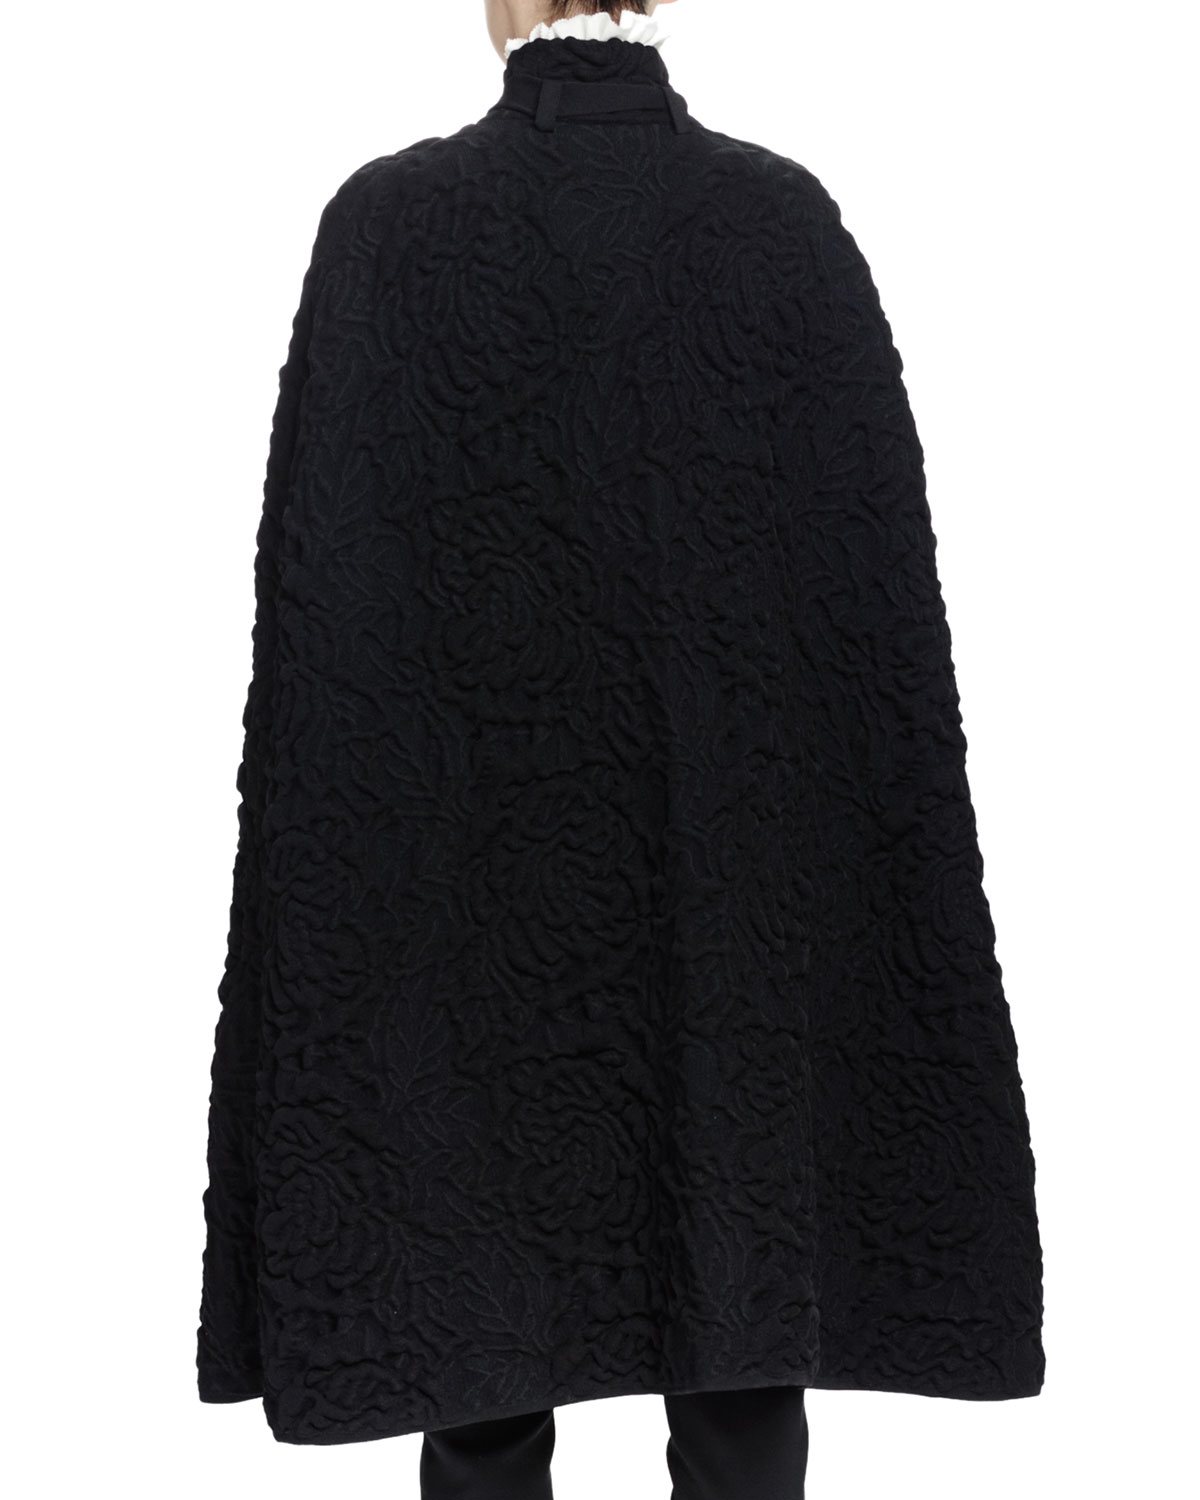 Alexander mcqueen Chunky Quilted-knit Long Cape in Black Lyst